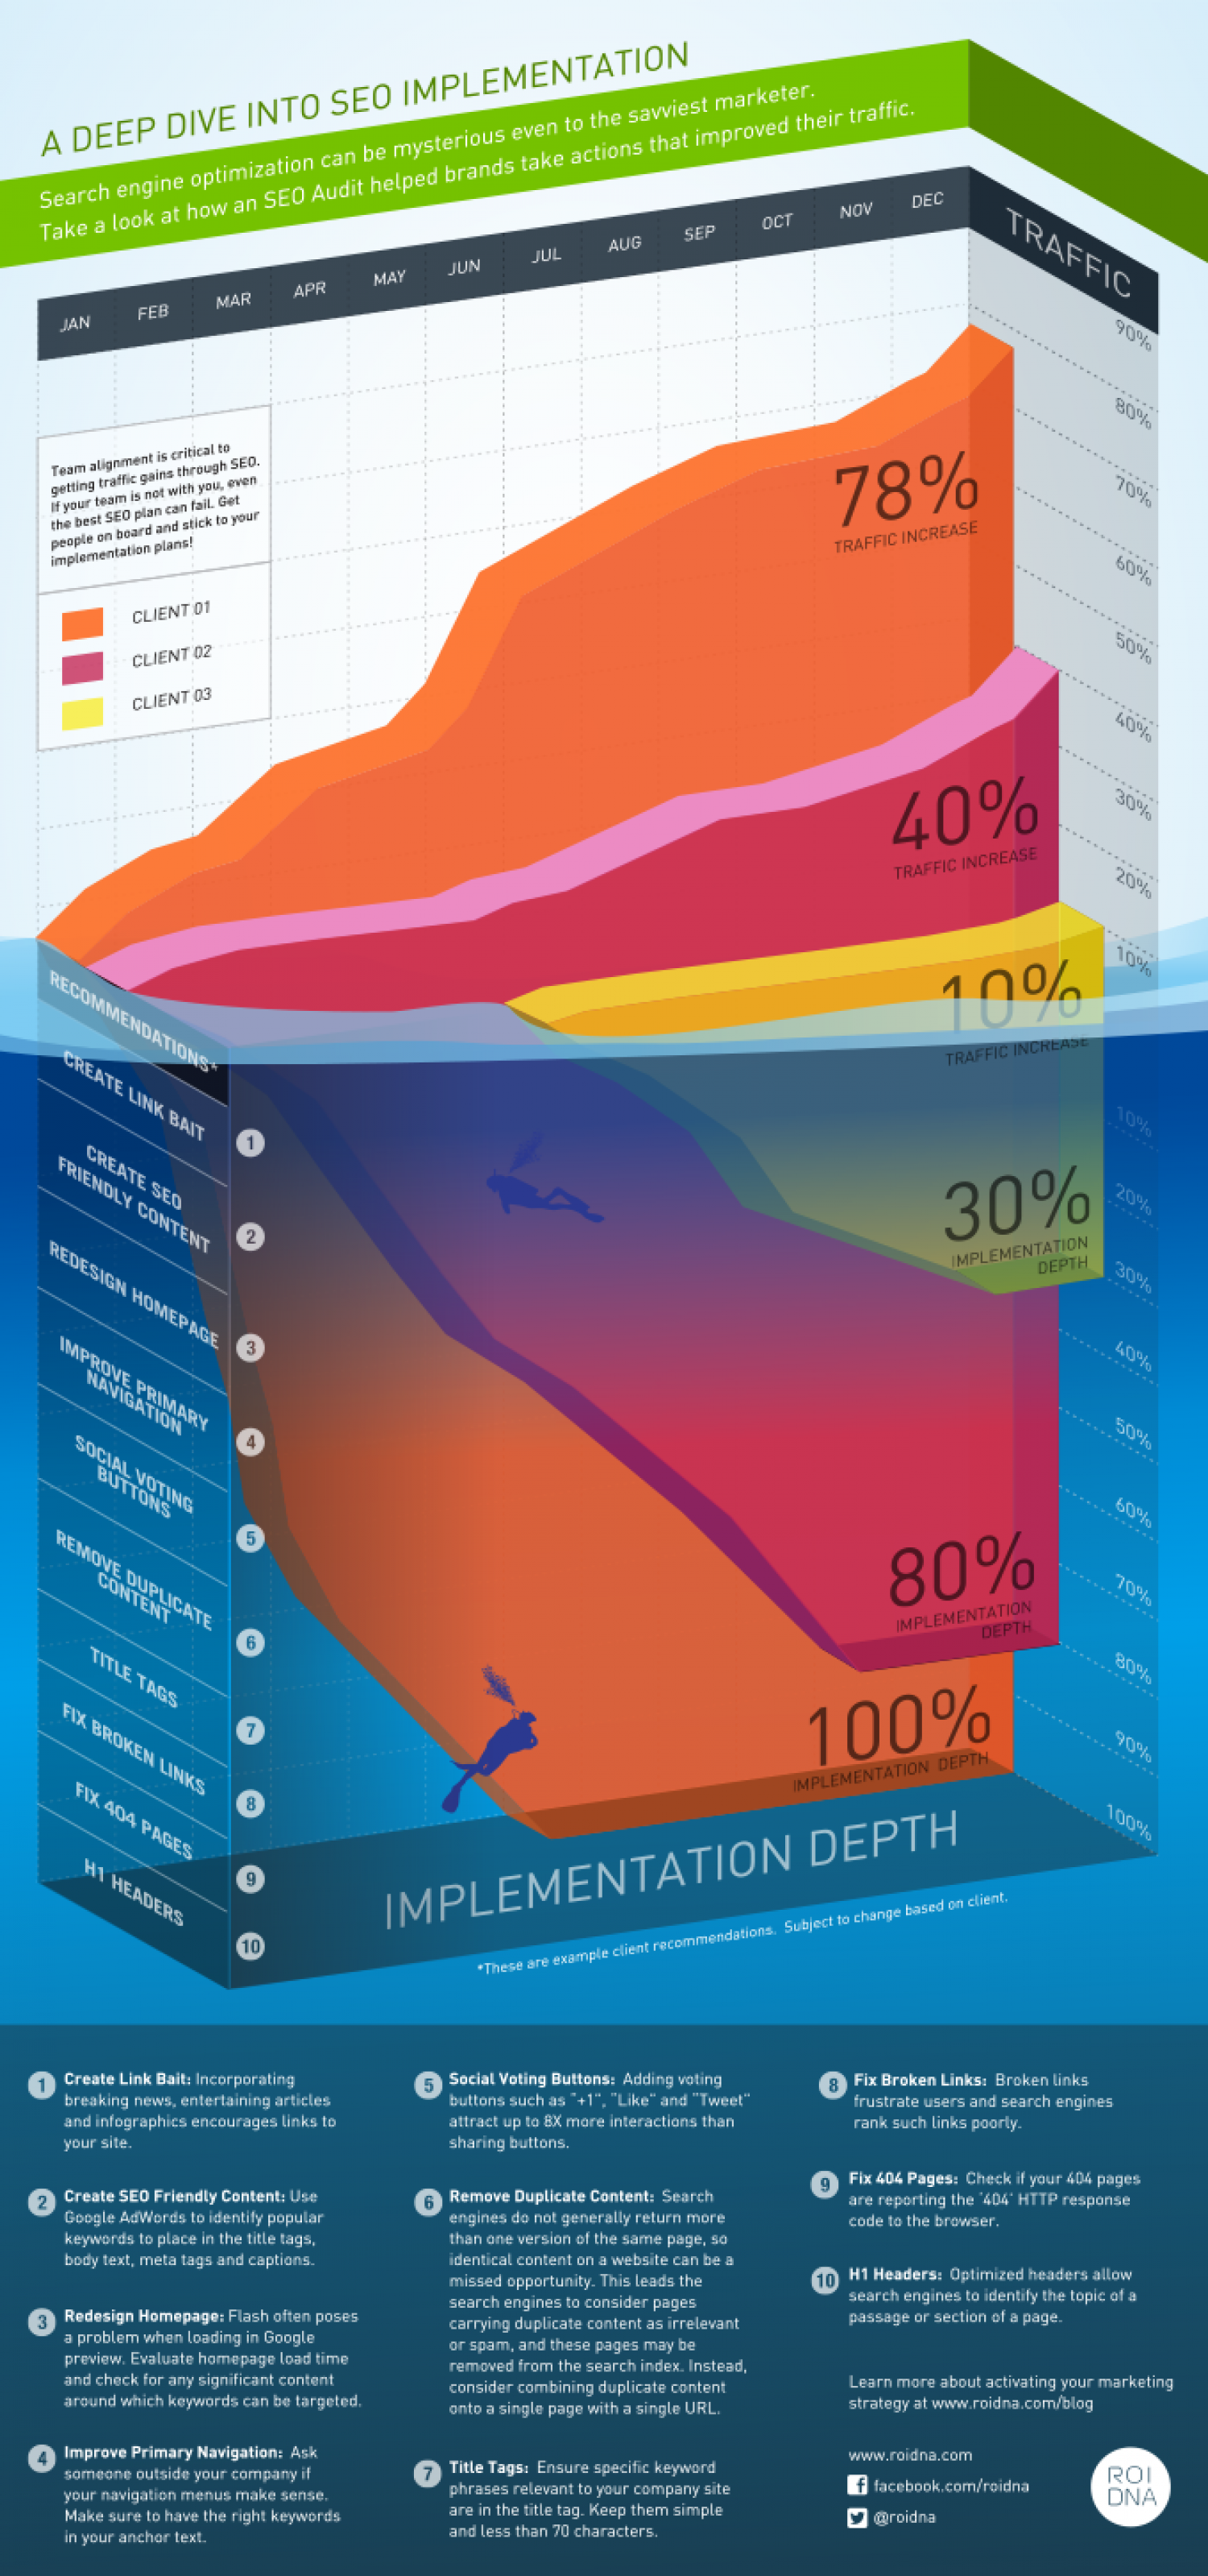 Deep Dive Into SEO Implementation Infographic